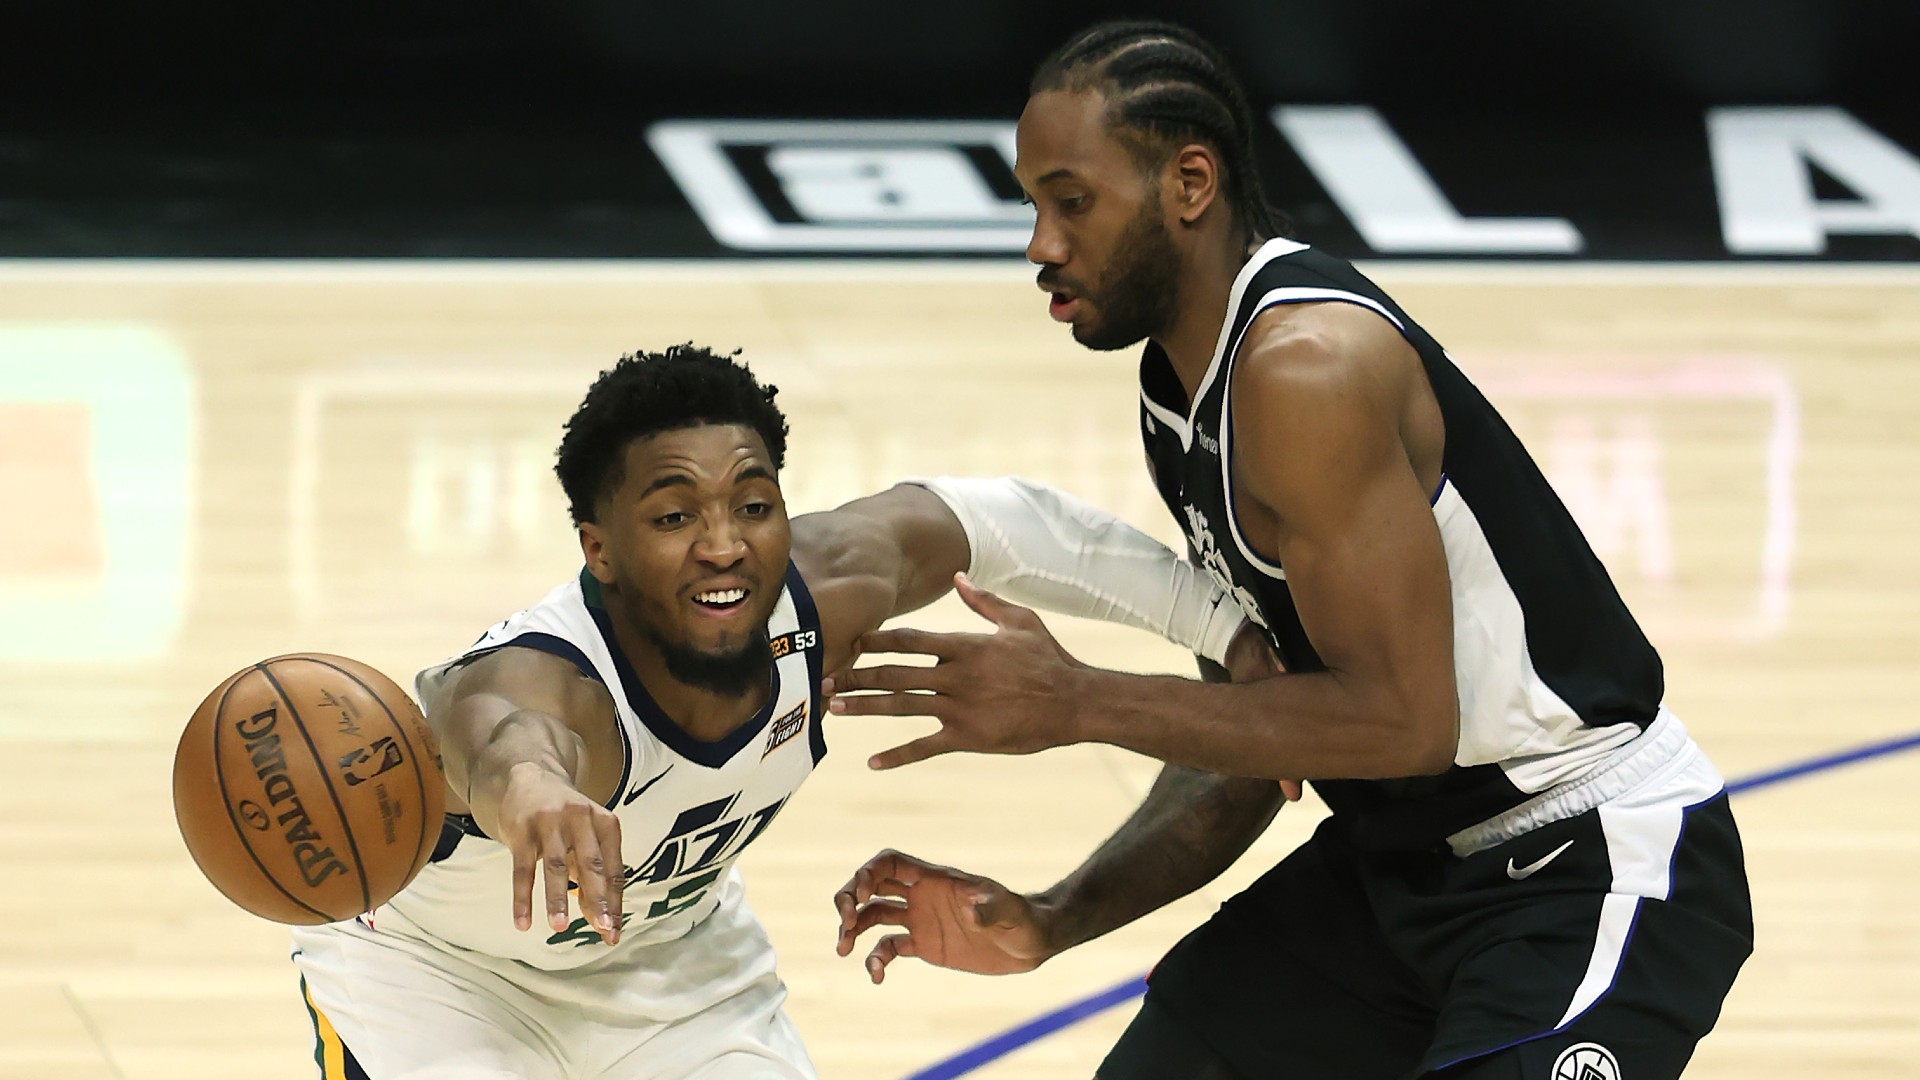 Donovan Mitchell injury update: Jazz star in 'good shape' after tweaking ankle vs. Clippers